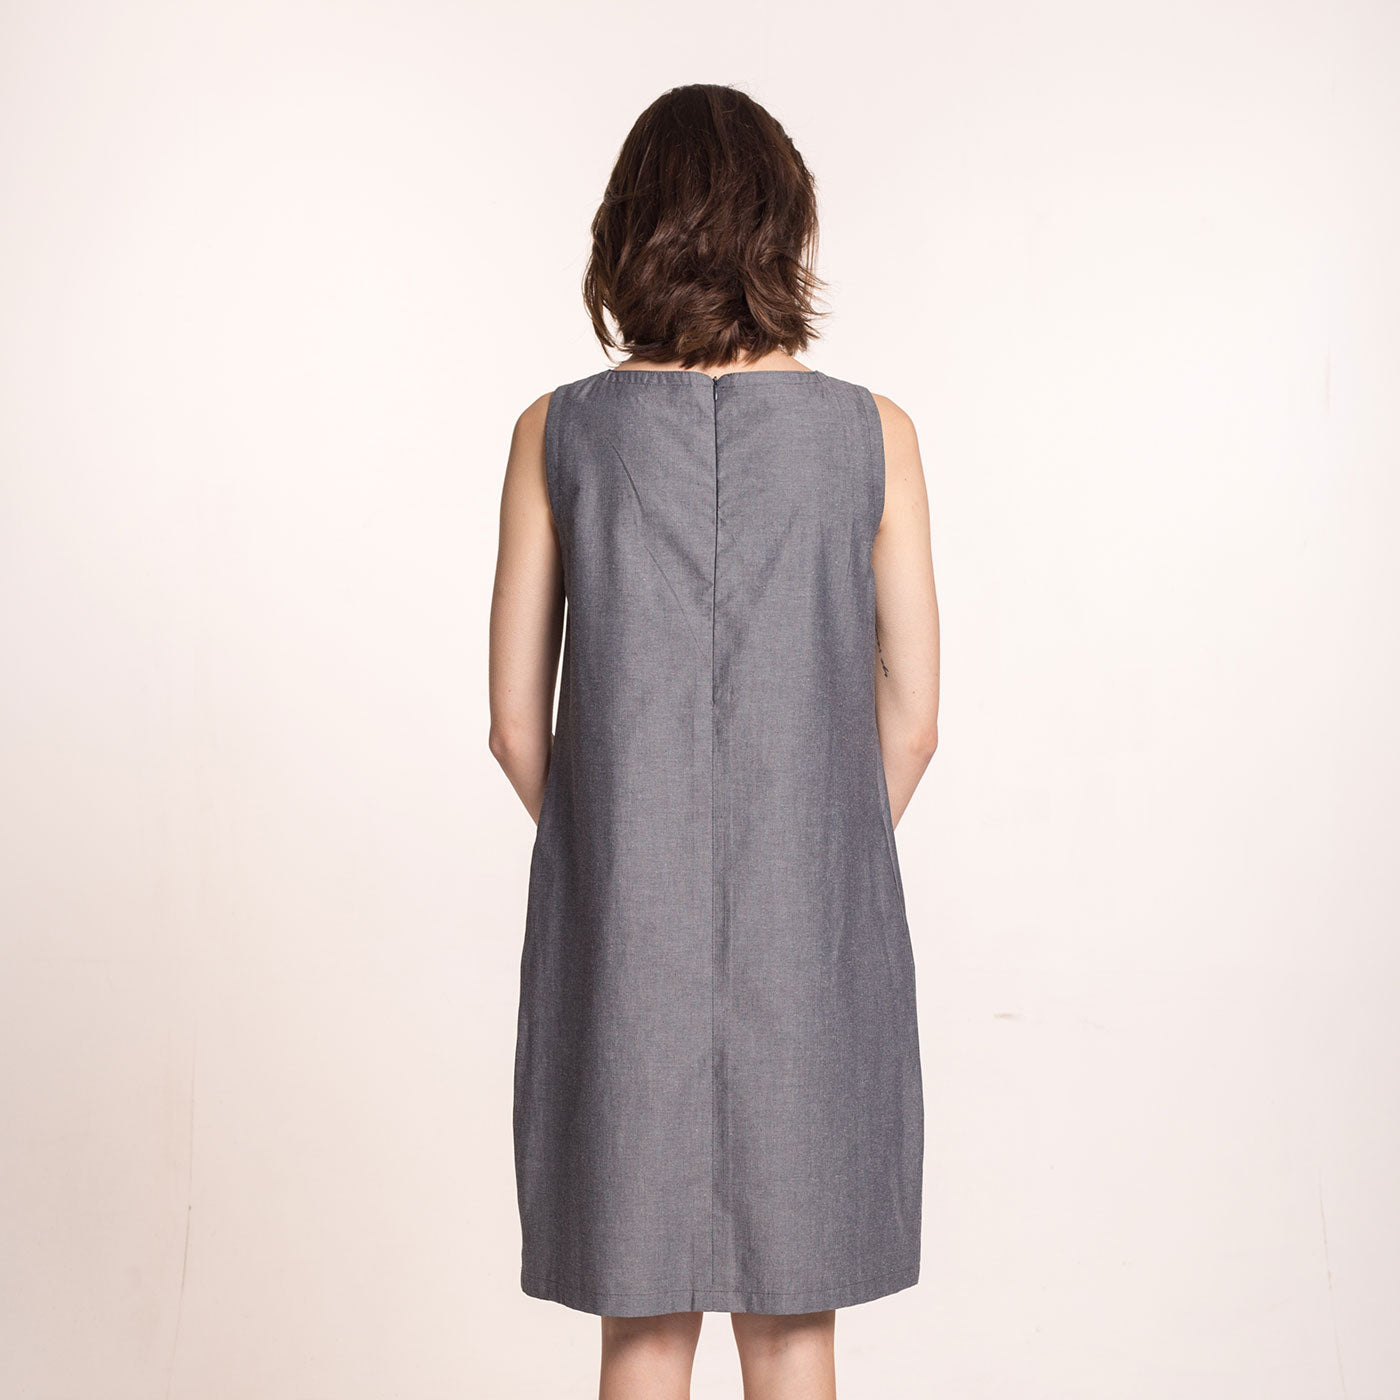 The model wears a grey, sustainable,  organic cotton, A-line shape dress, with pleats on the round neckline and pockets, back view.